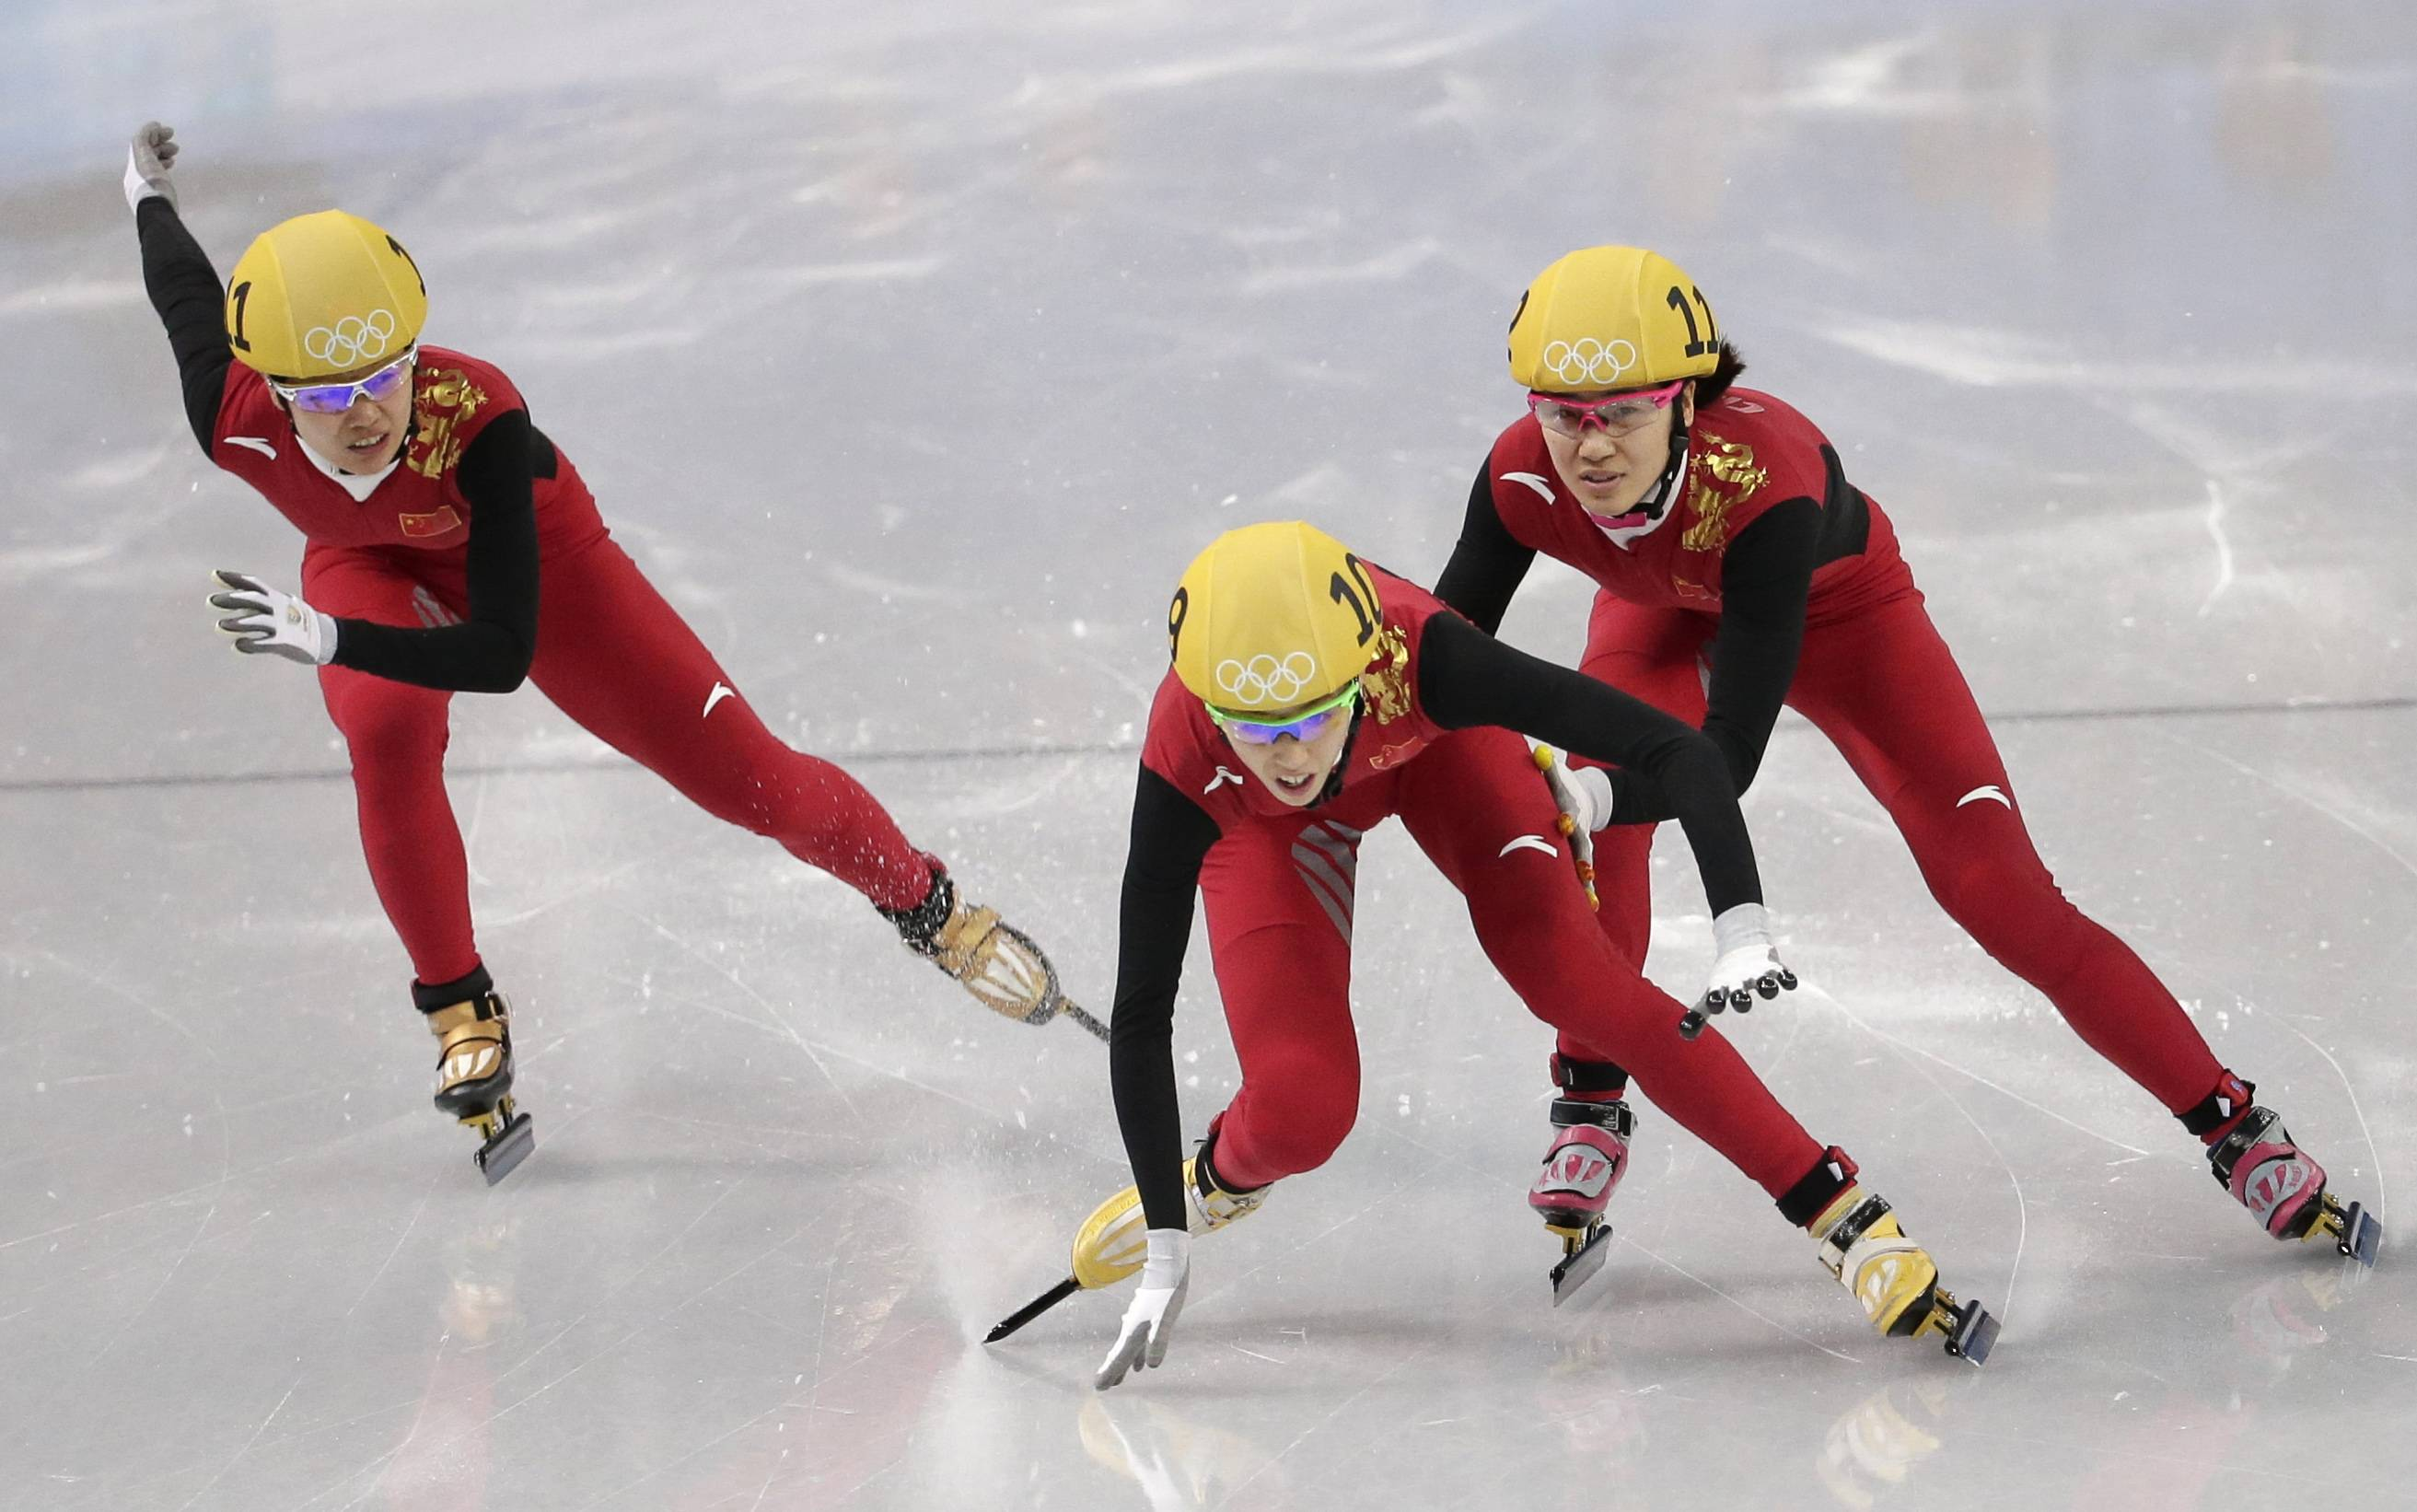 Fan Kexin of China, center, loses her balance as Liu Qiuhong of China, right, and Li Jianrou of China compete Thursday in a women's 500m short track speedskating semifinal at the Iceberg Skating Palace during the 2014 Winter Olympics in Sochi, Russia.